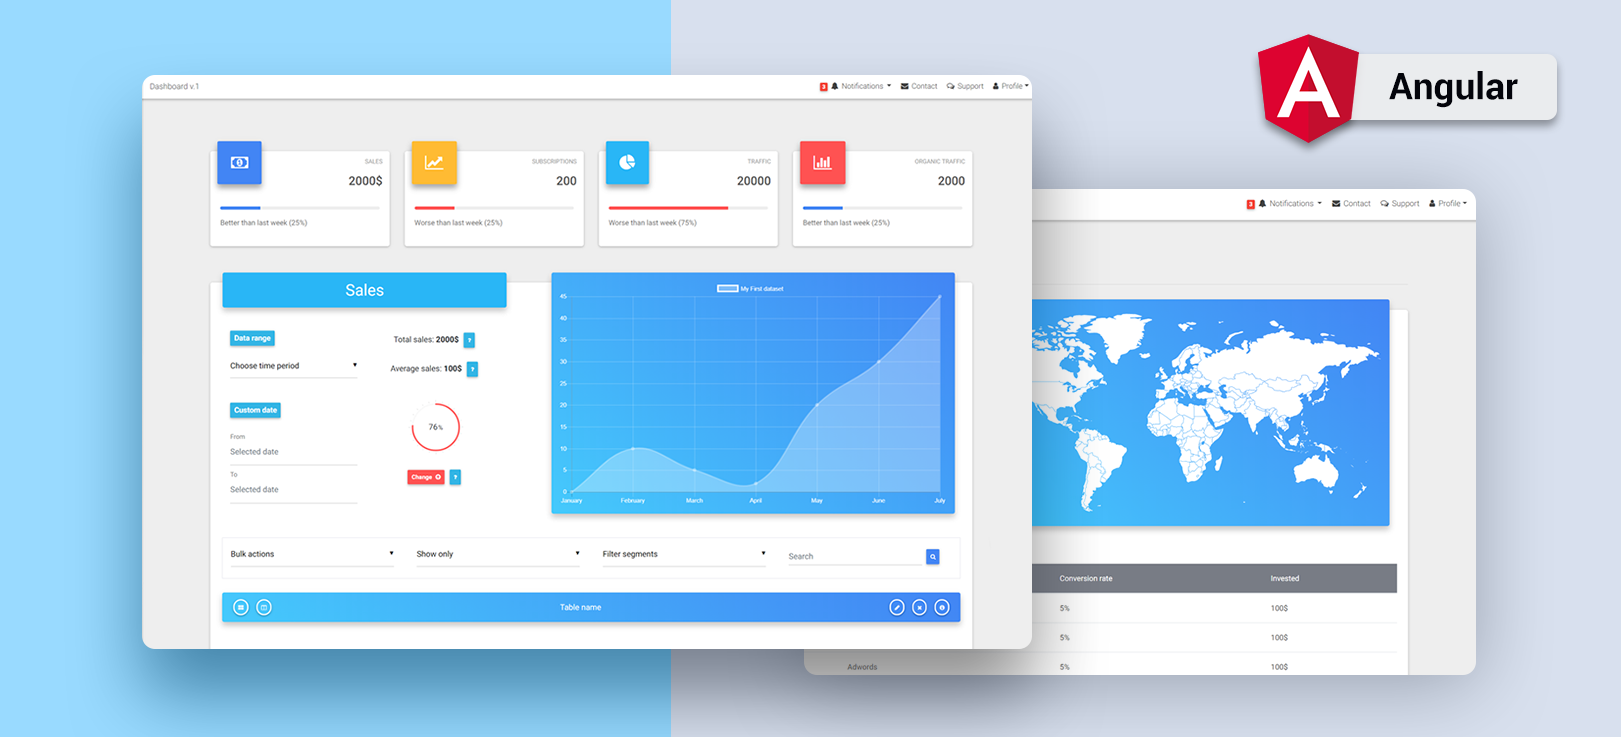 Angular Admin Dashboard Template - Angular 6 & Material